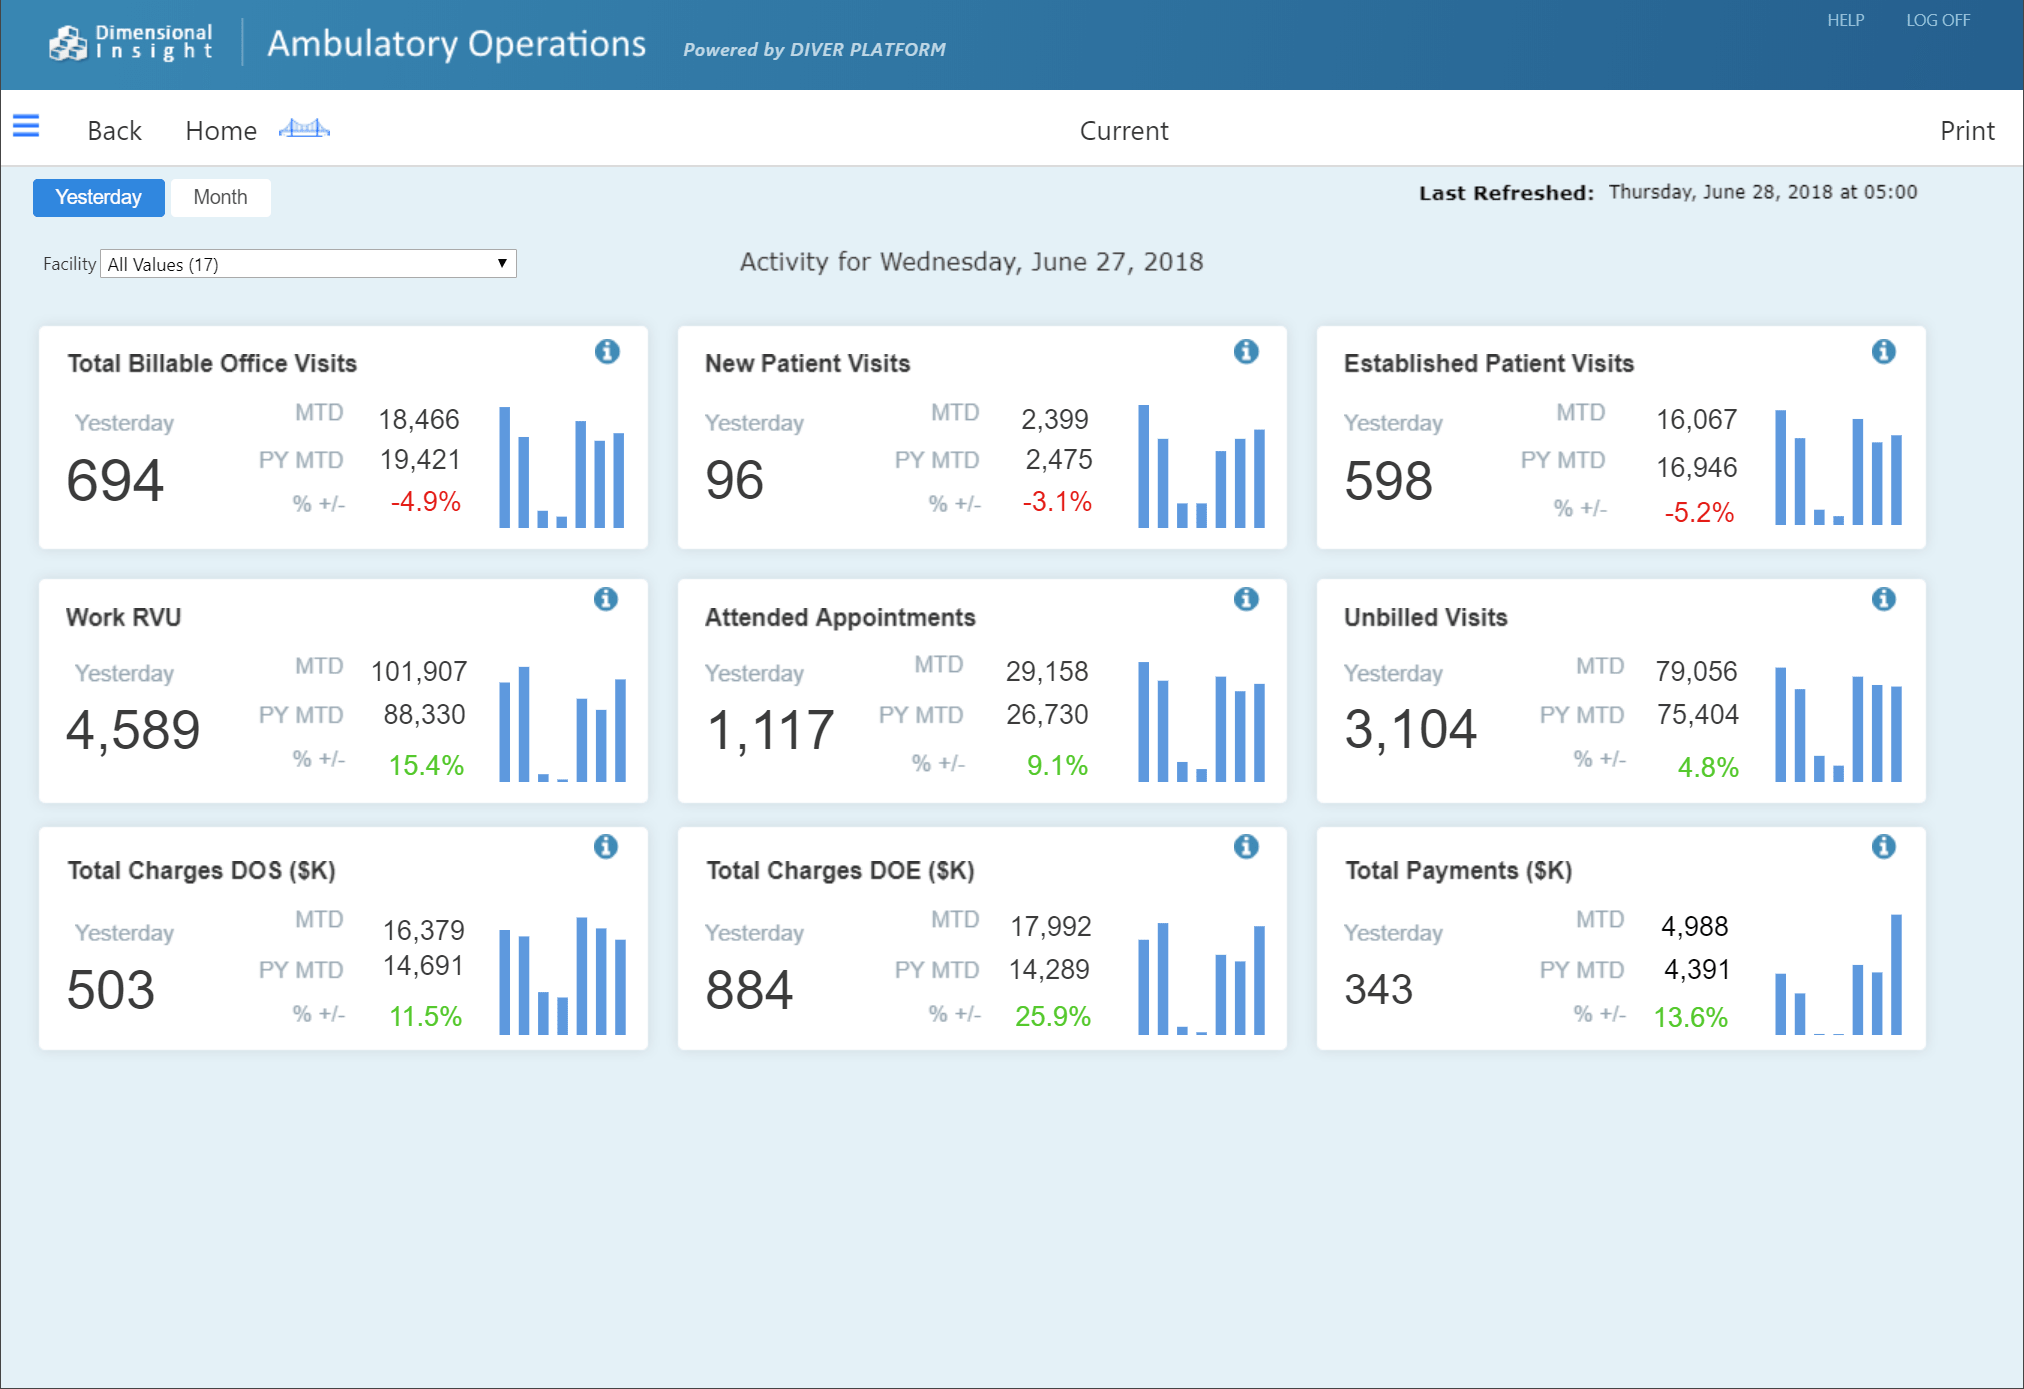 ambulatory-operations-current-dashboard-min